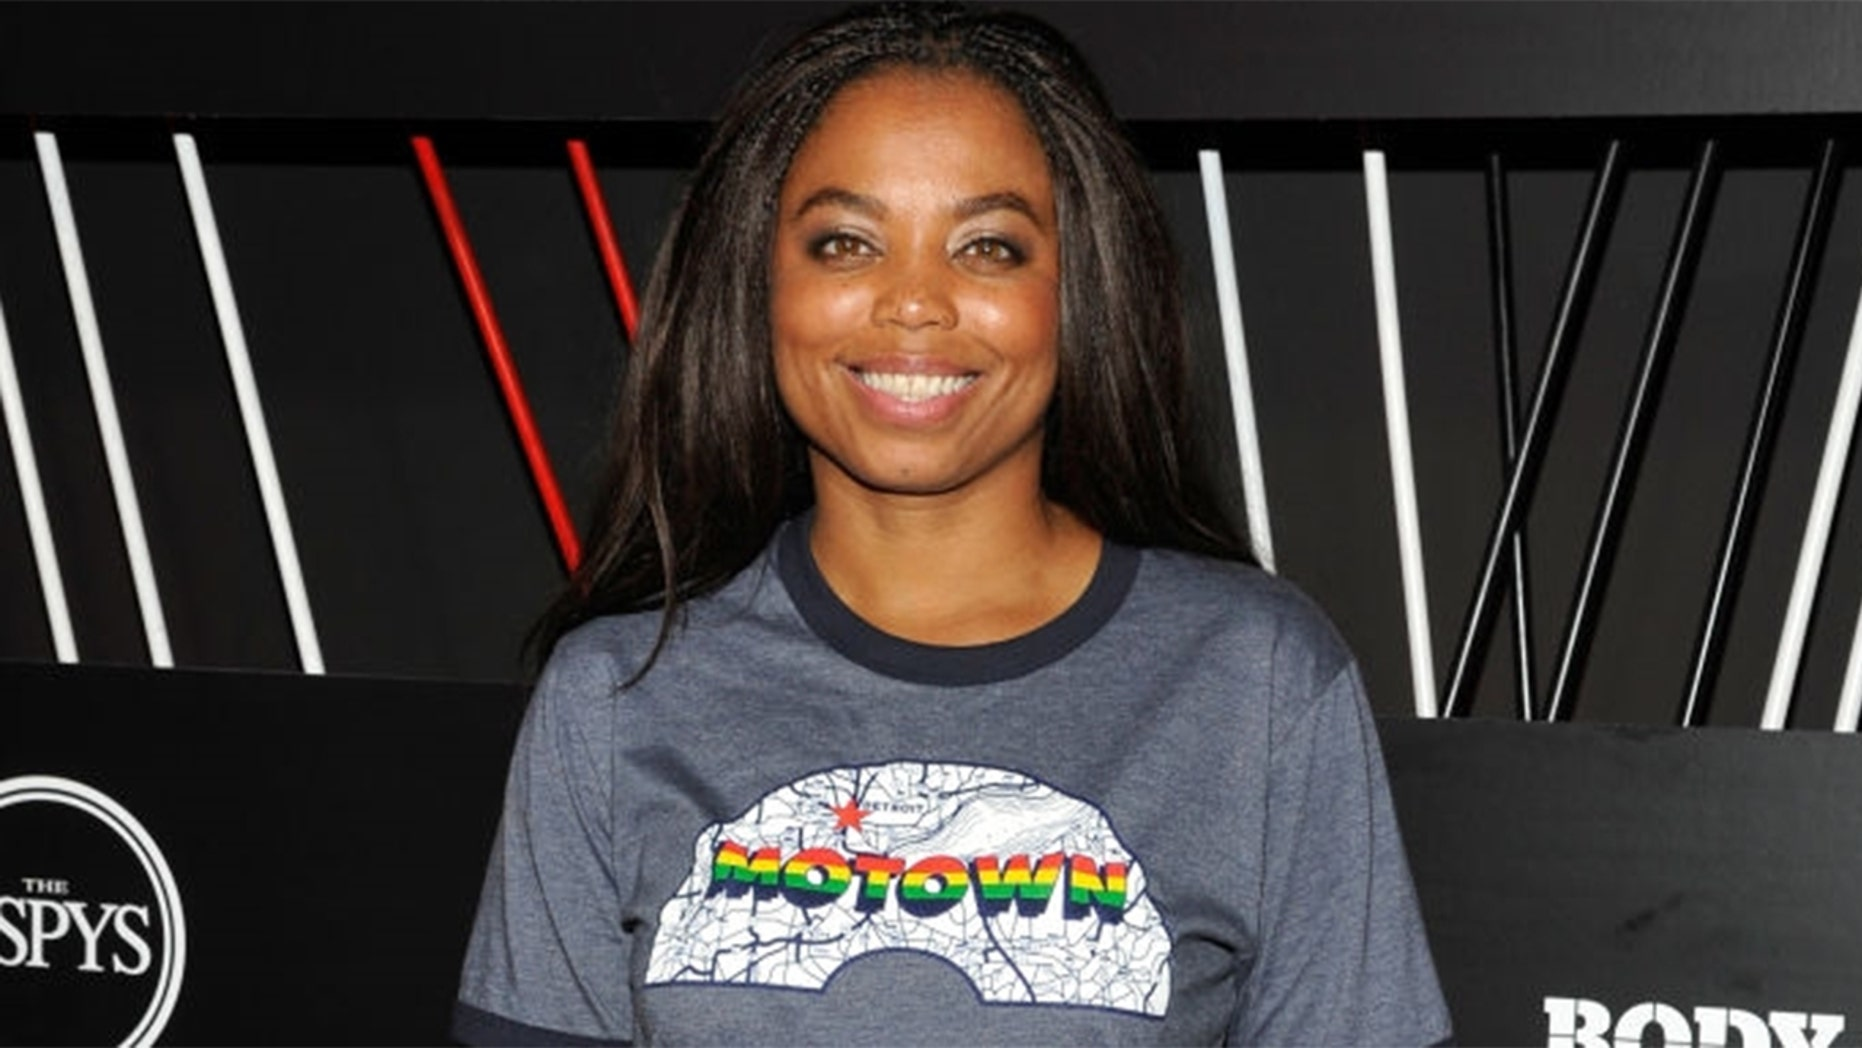 Jemele Hill made her comments in October, 2017, and was suspended by the network.